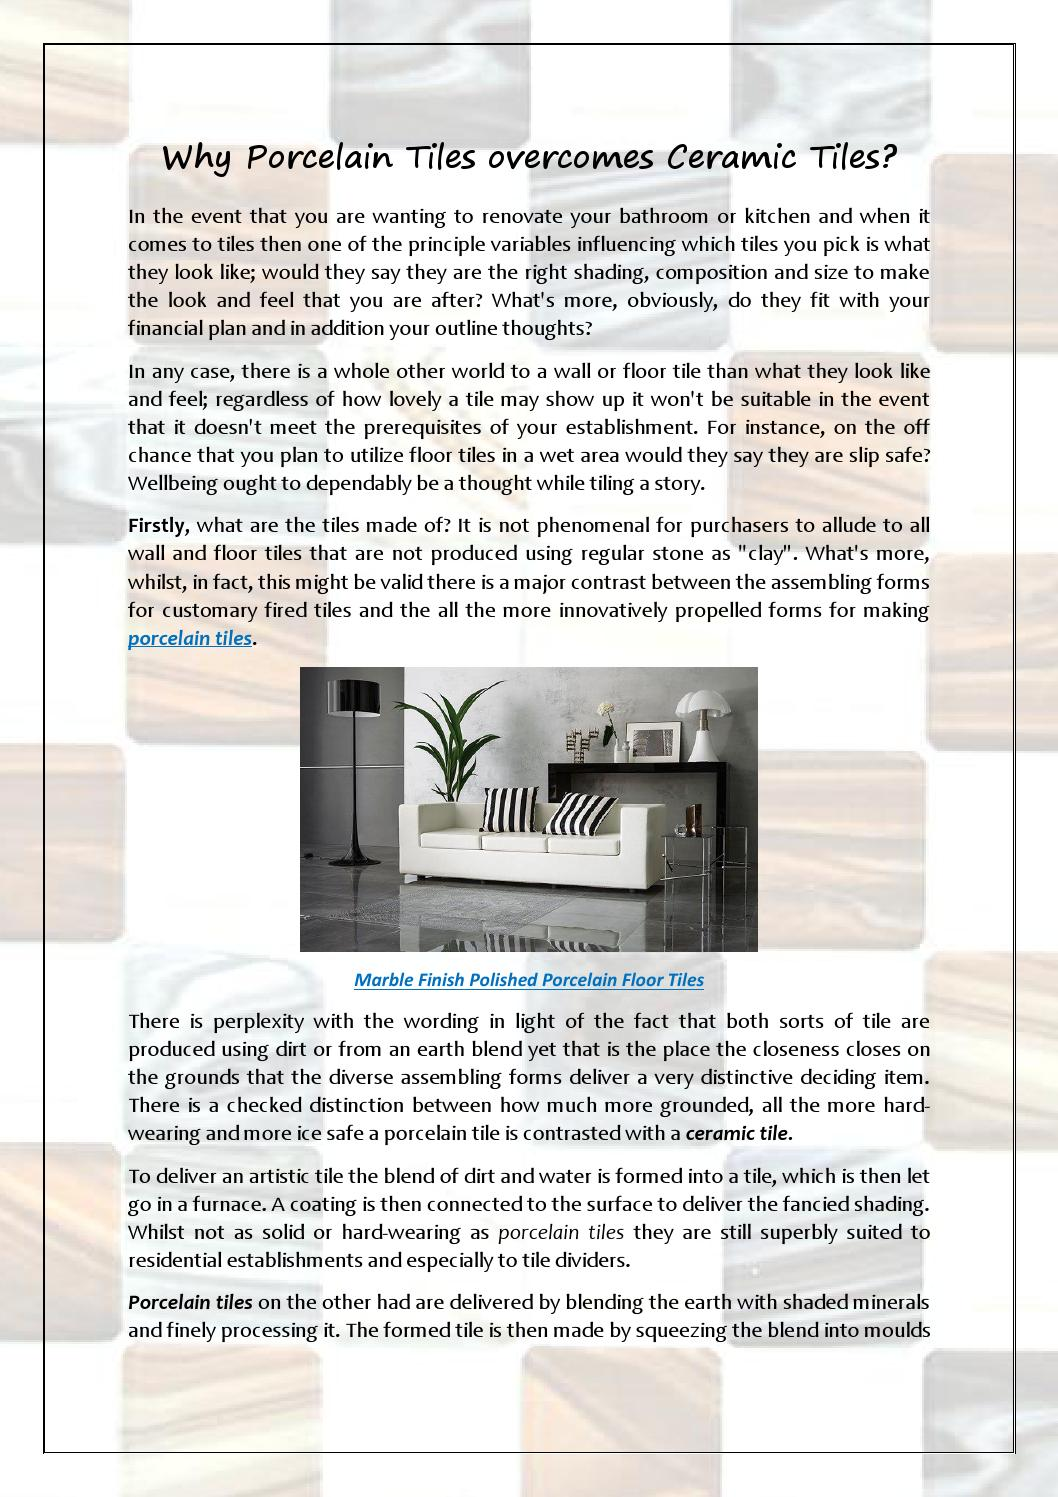 Why Porcelain Tiles Overcomes Ceramic Tiles By Tilezone Uk Issuu